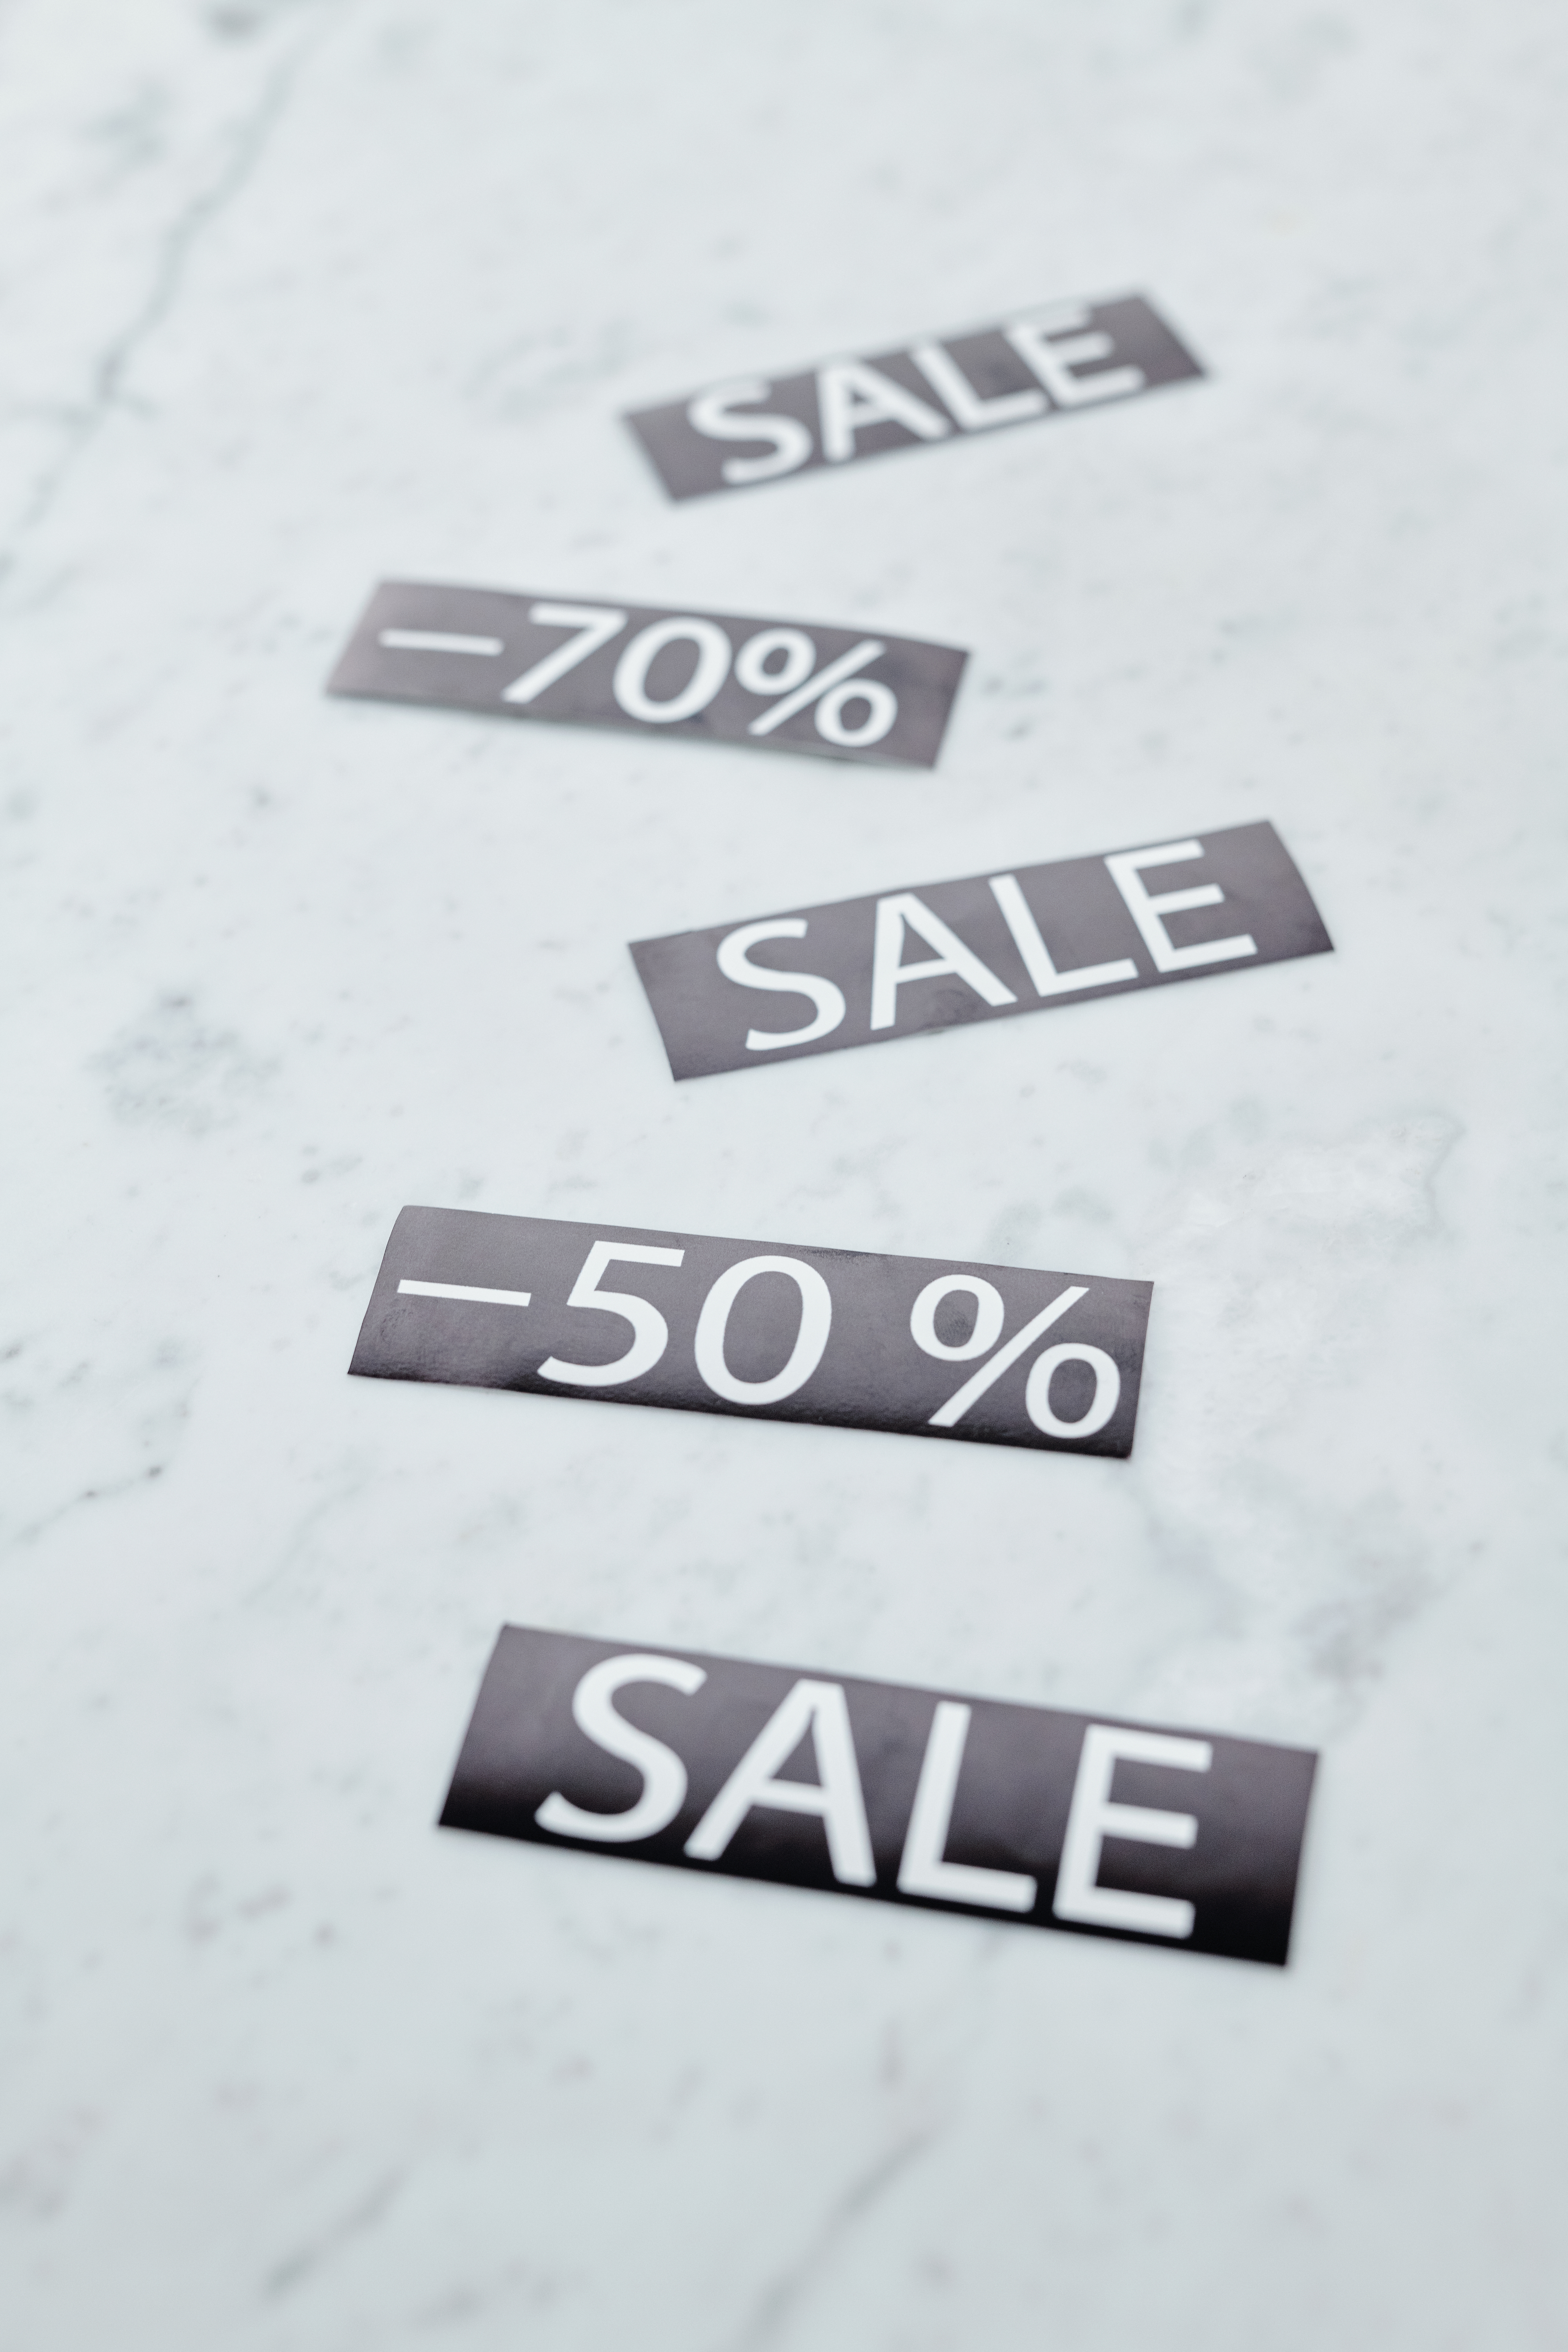 discount percentages and sale sign